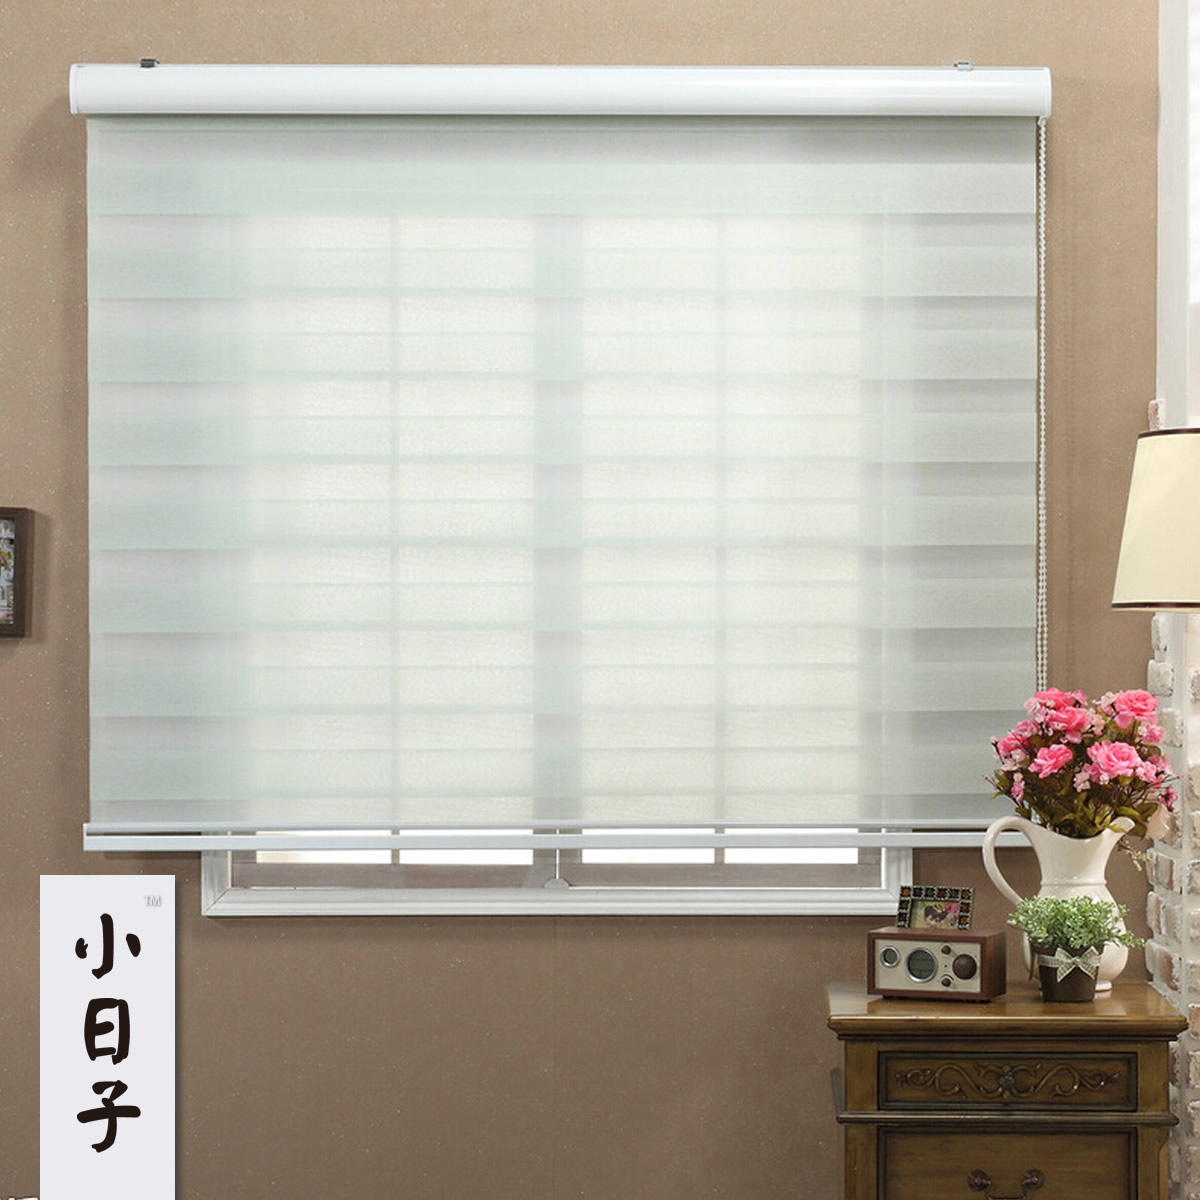 ts roll sunscreen pull at down lowes shades shade curtains guide natural curtain window roller up